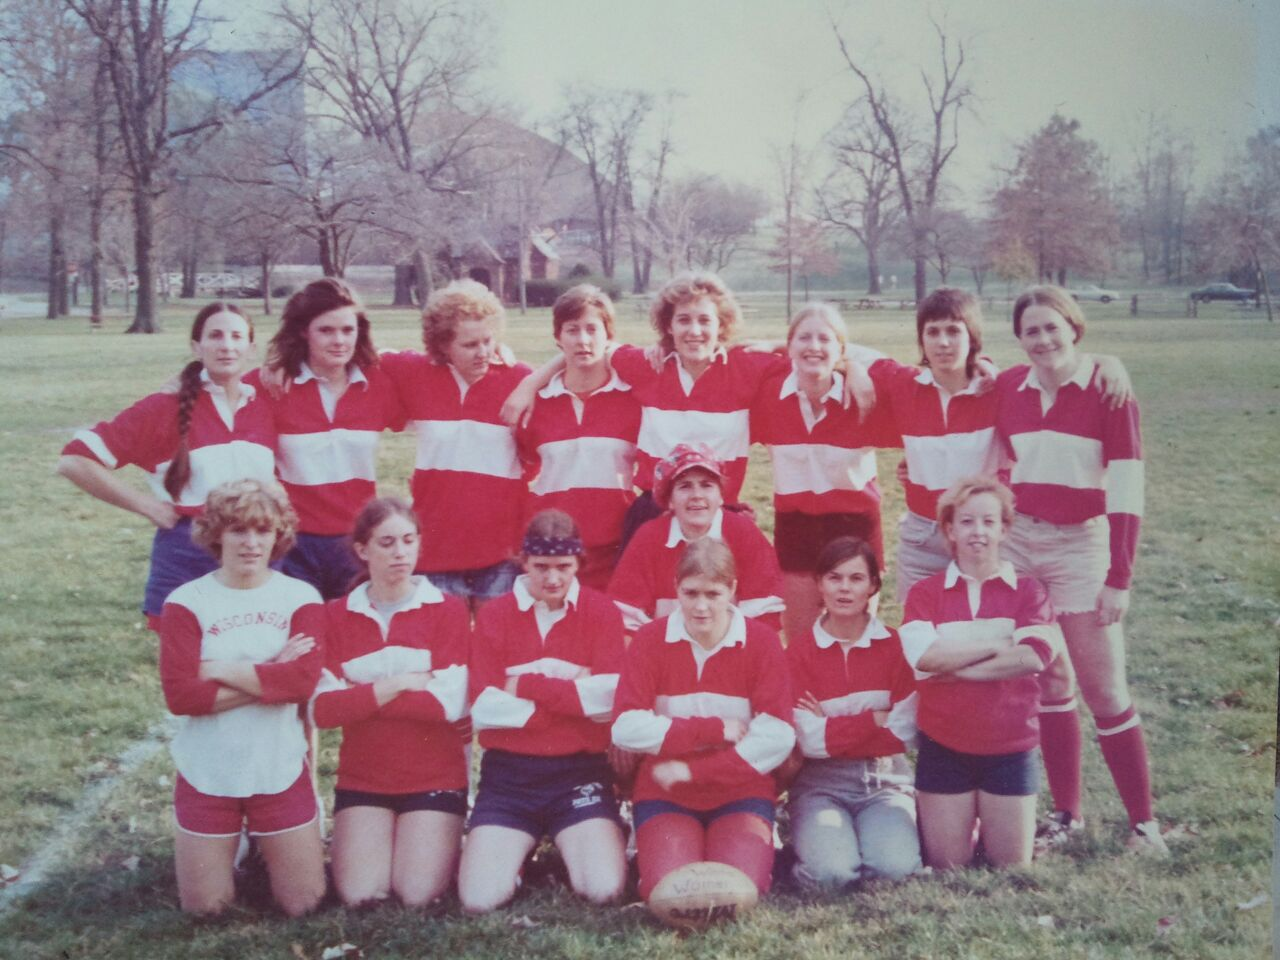 """The first-ever team photo of the Wisconsin Women's Rugby Football Club at a tournament in Indiana in the spring of 1976. Thank you to alumni Nancy """"Red"""" Thorne Cahill for sharing this with our team."""